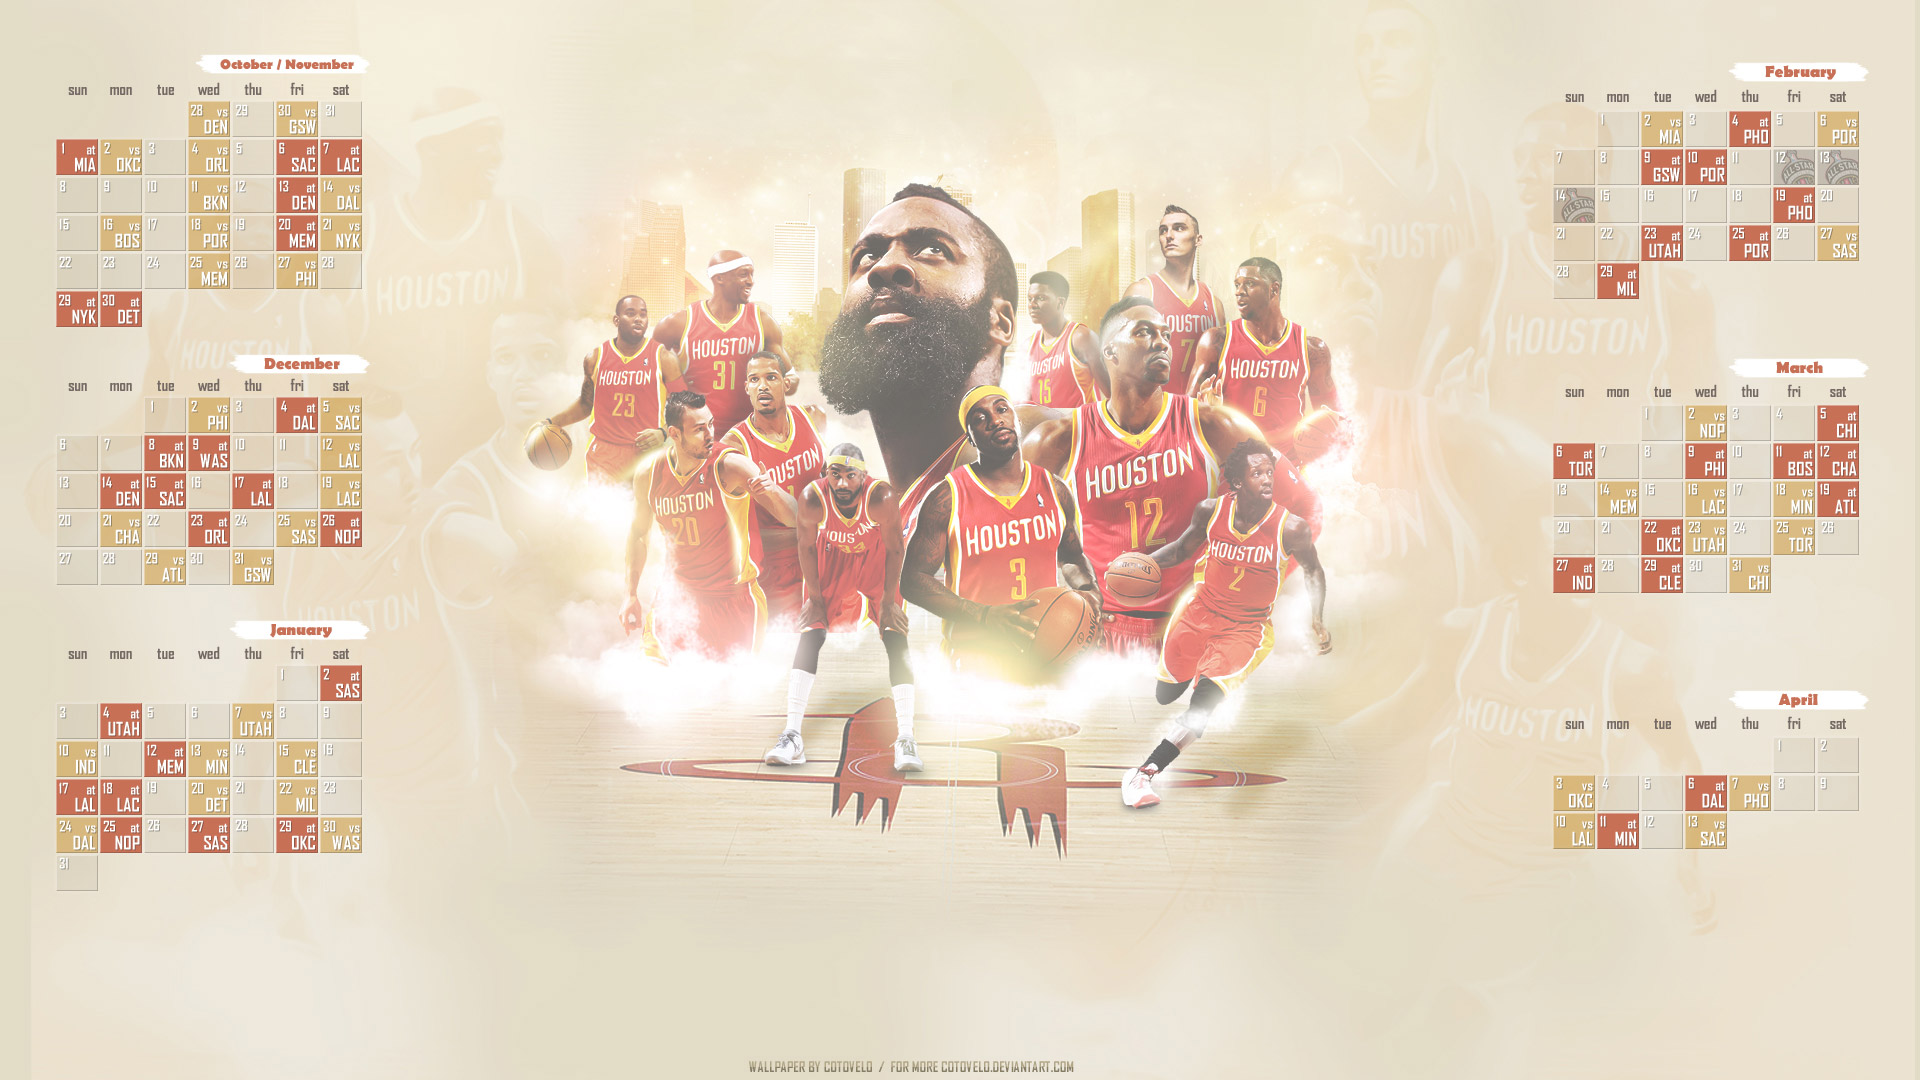 Houston Rockets Schedule 2015-2016 Wallpaper